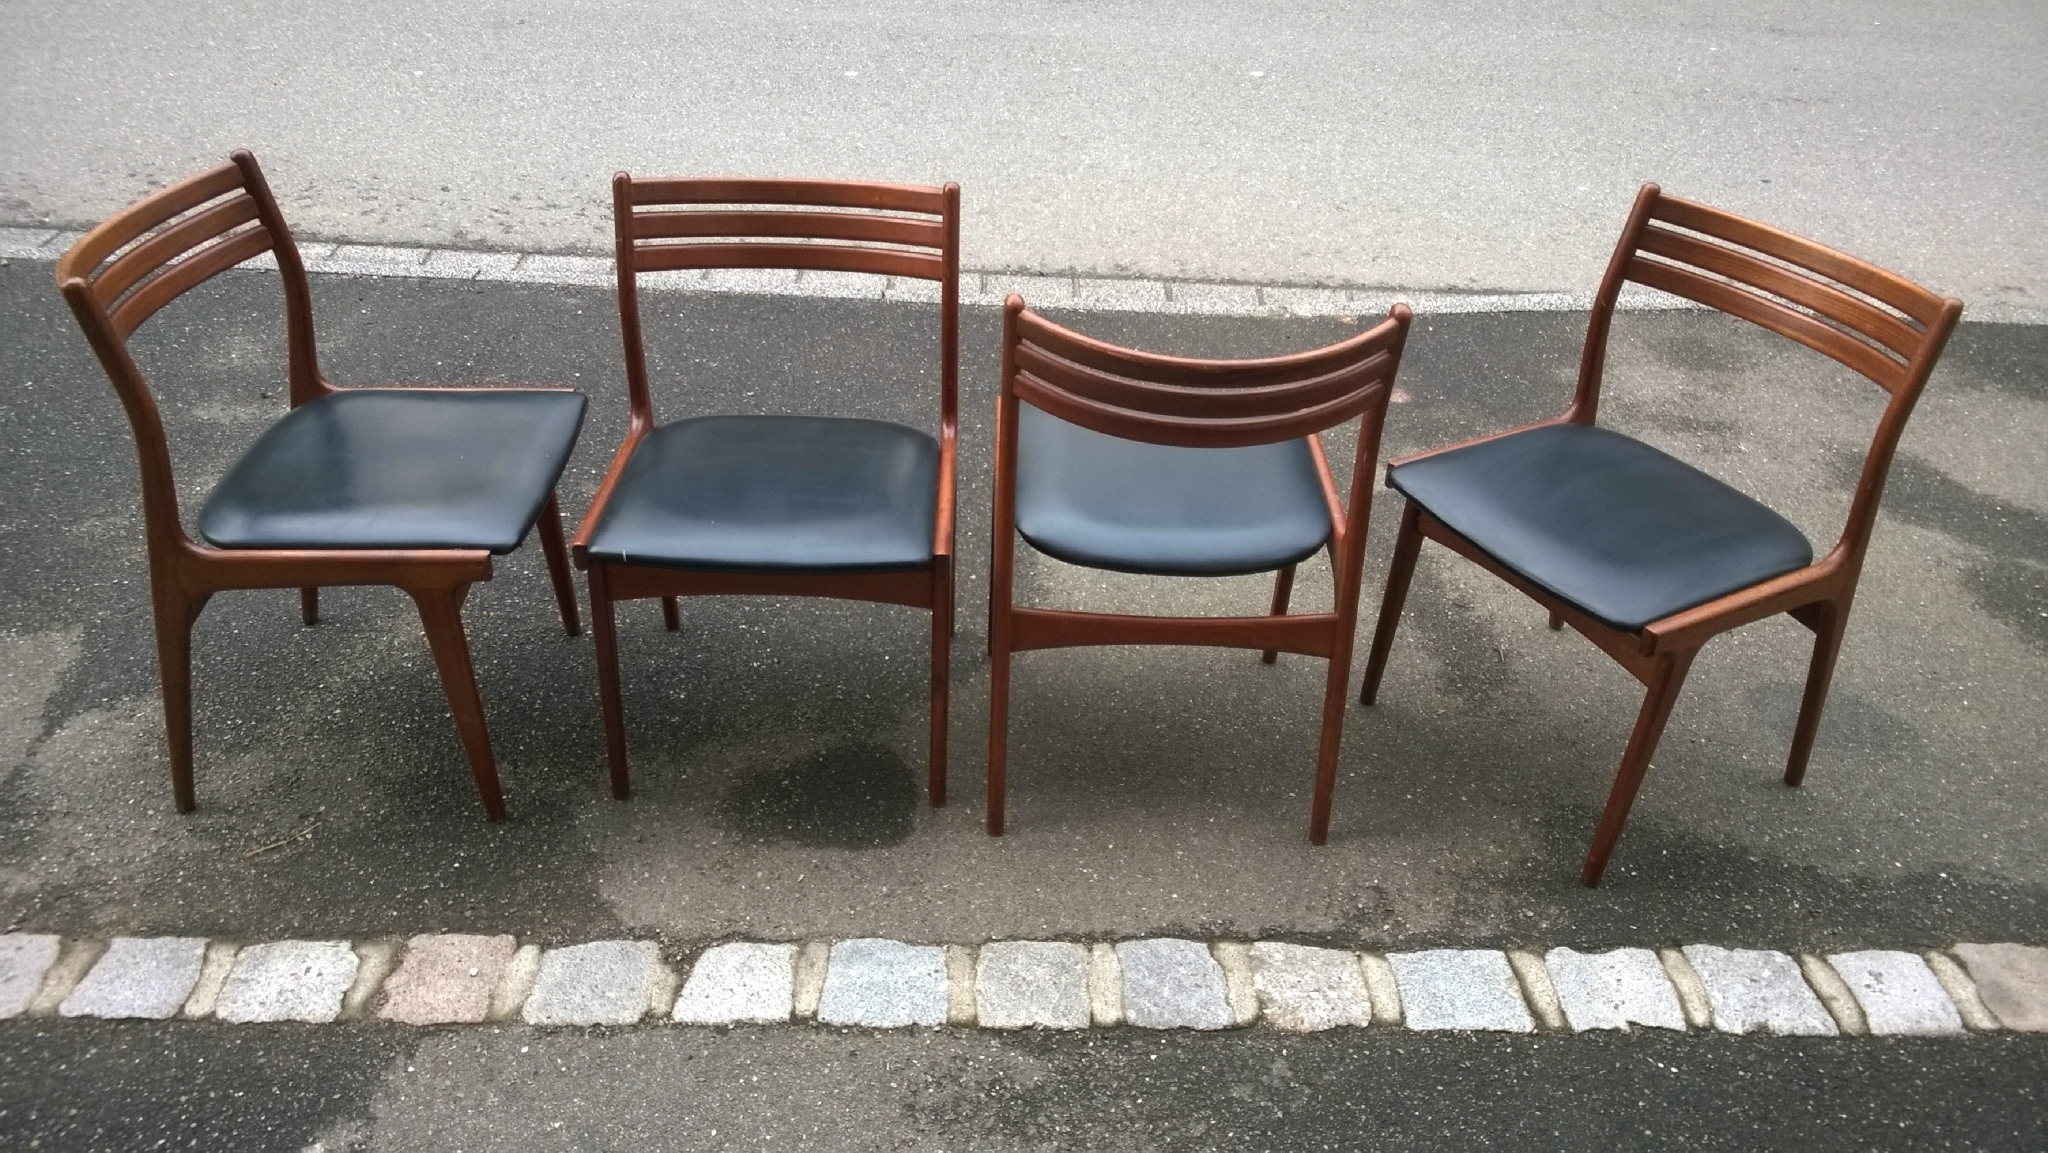 6 chaises scandinave en teck n koefoeds vintage 1965 for 6 chaises scandinaves